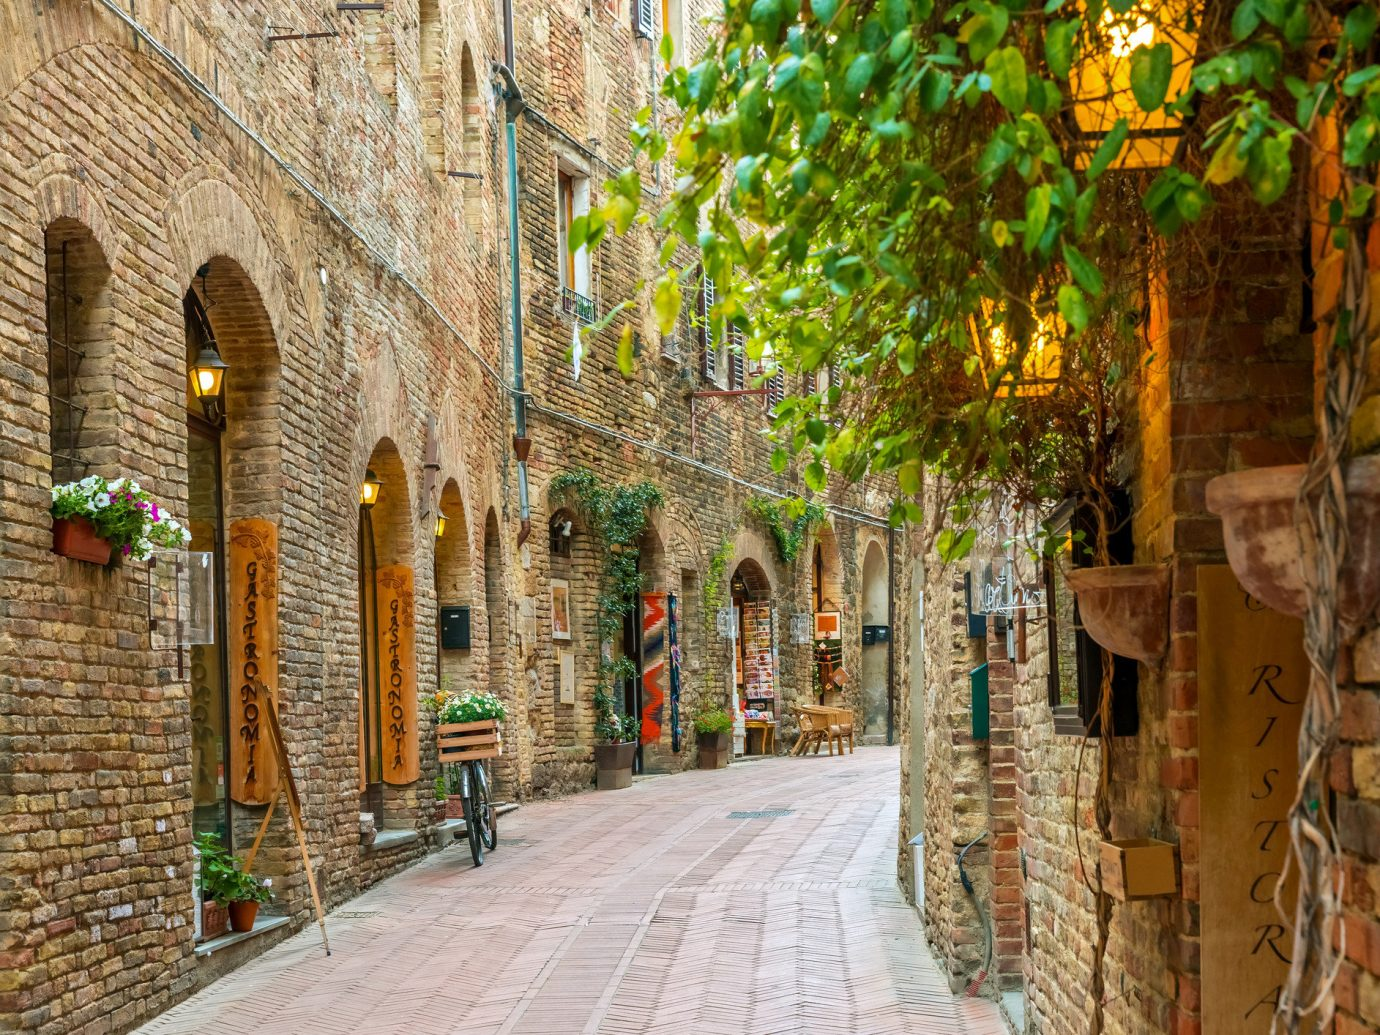 Trip Ideas building way scene sidewalk alley Town outdoor brick wall street medieval architecture history neighbourhood arch City road tree window historic site stone